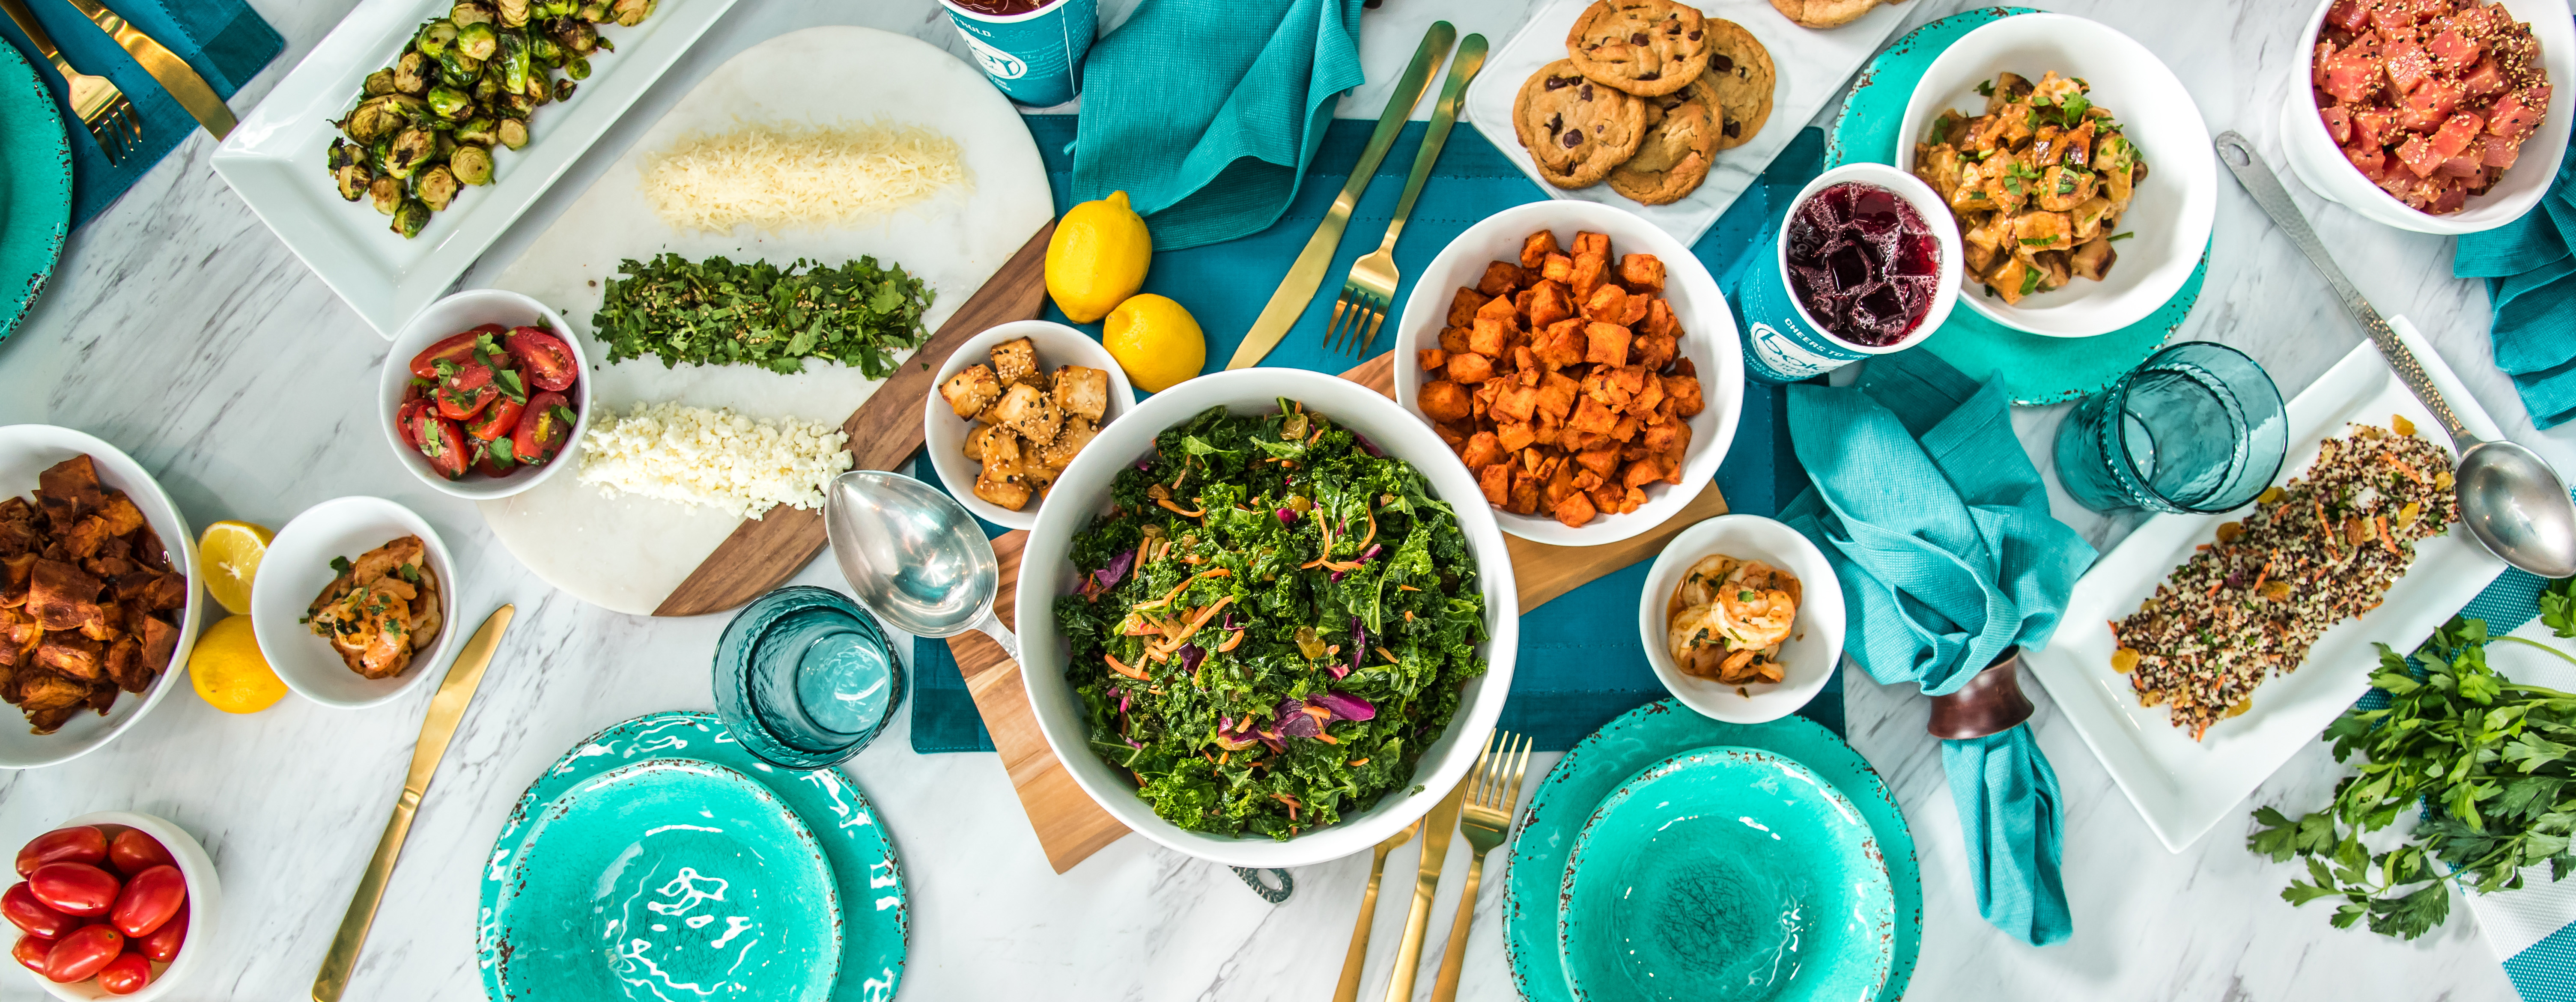 where is the best healthy catering jupiter?